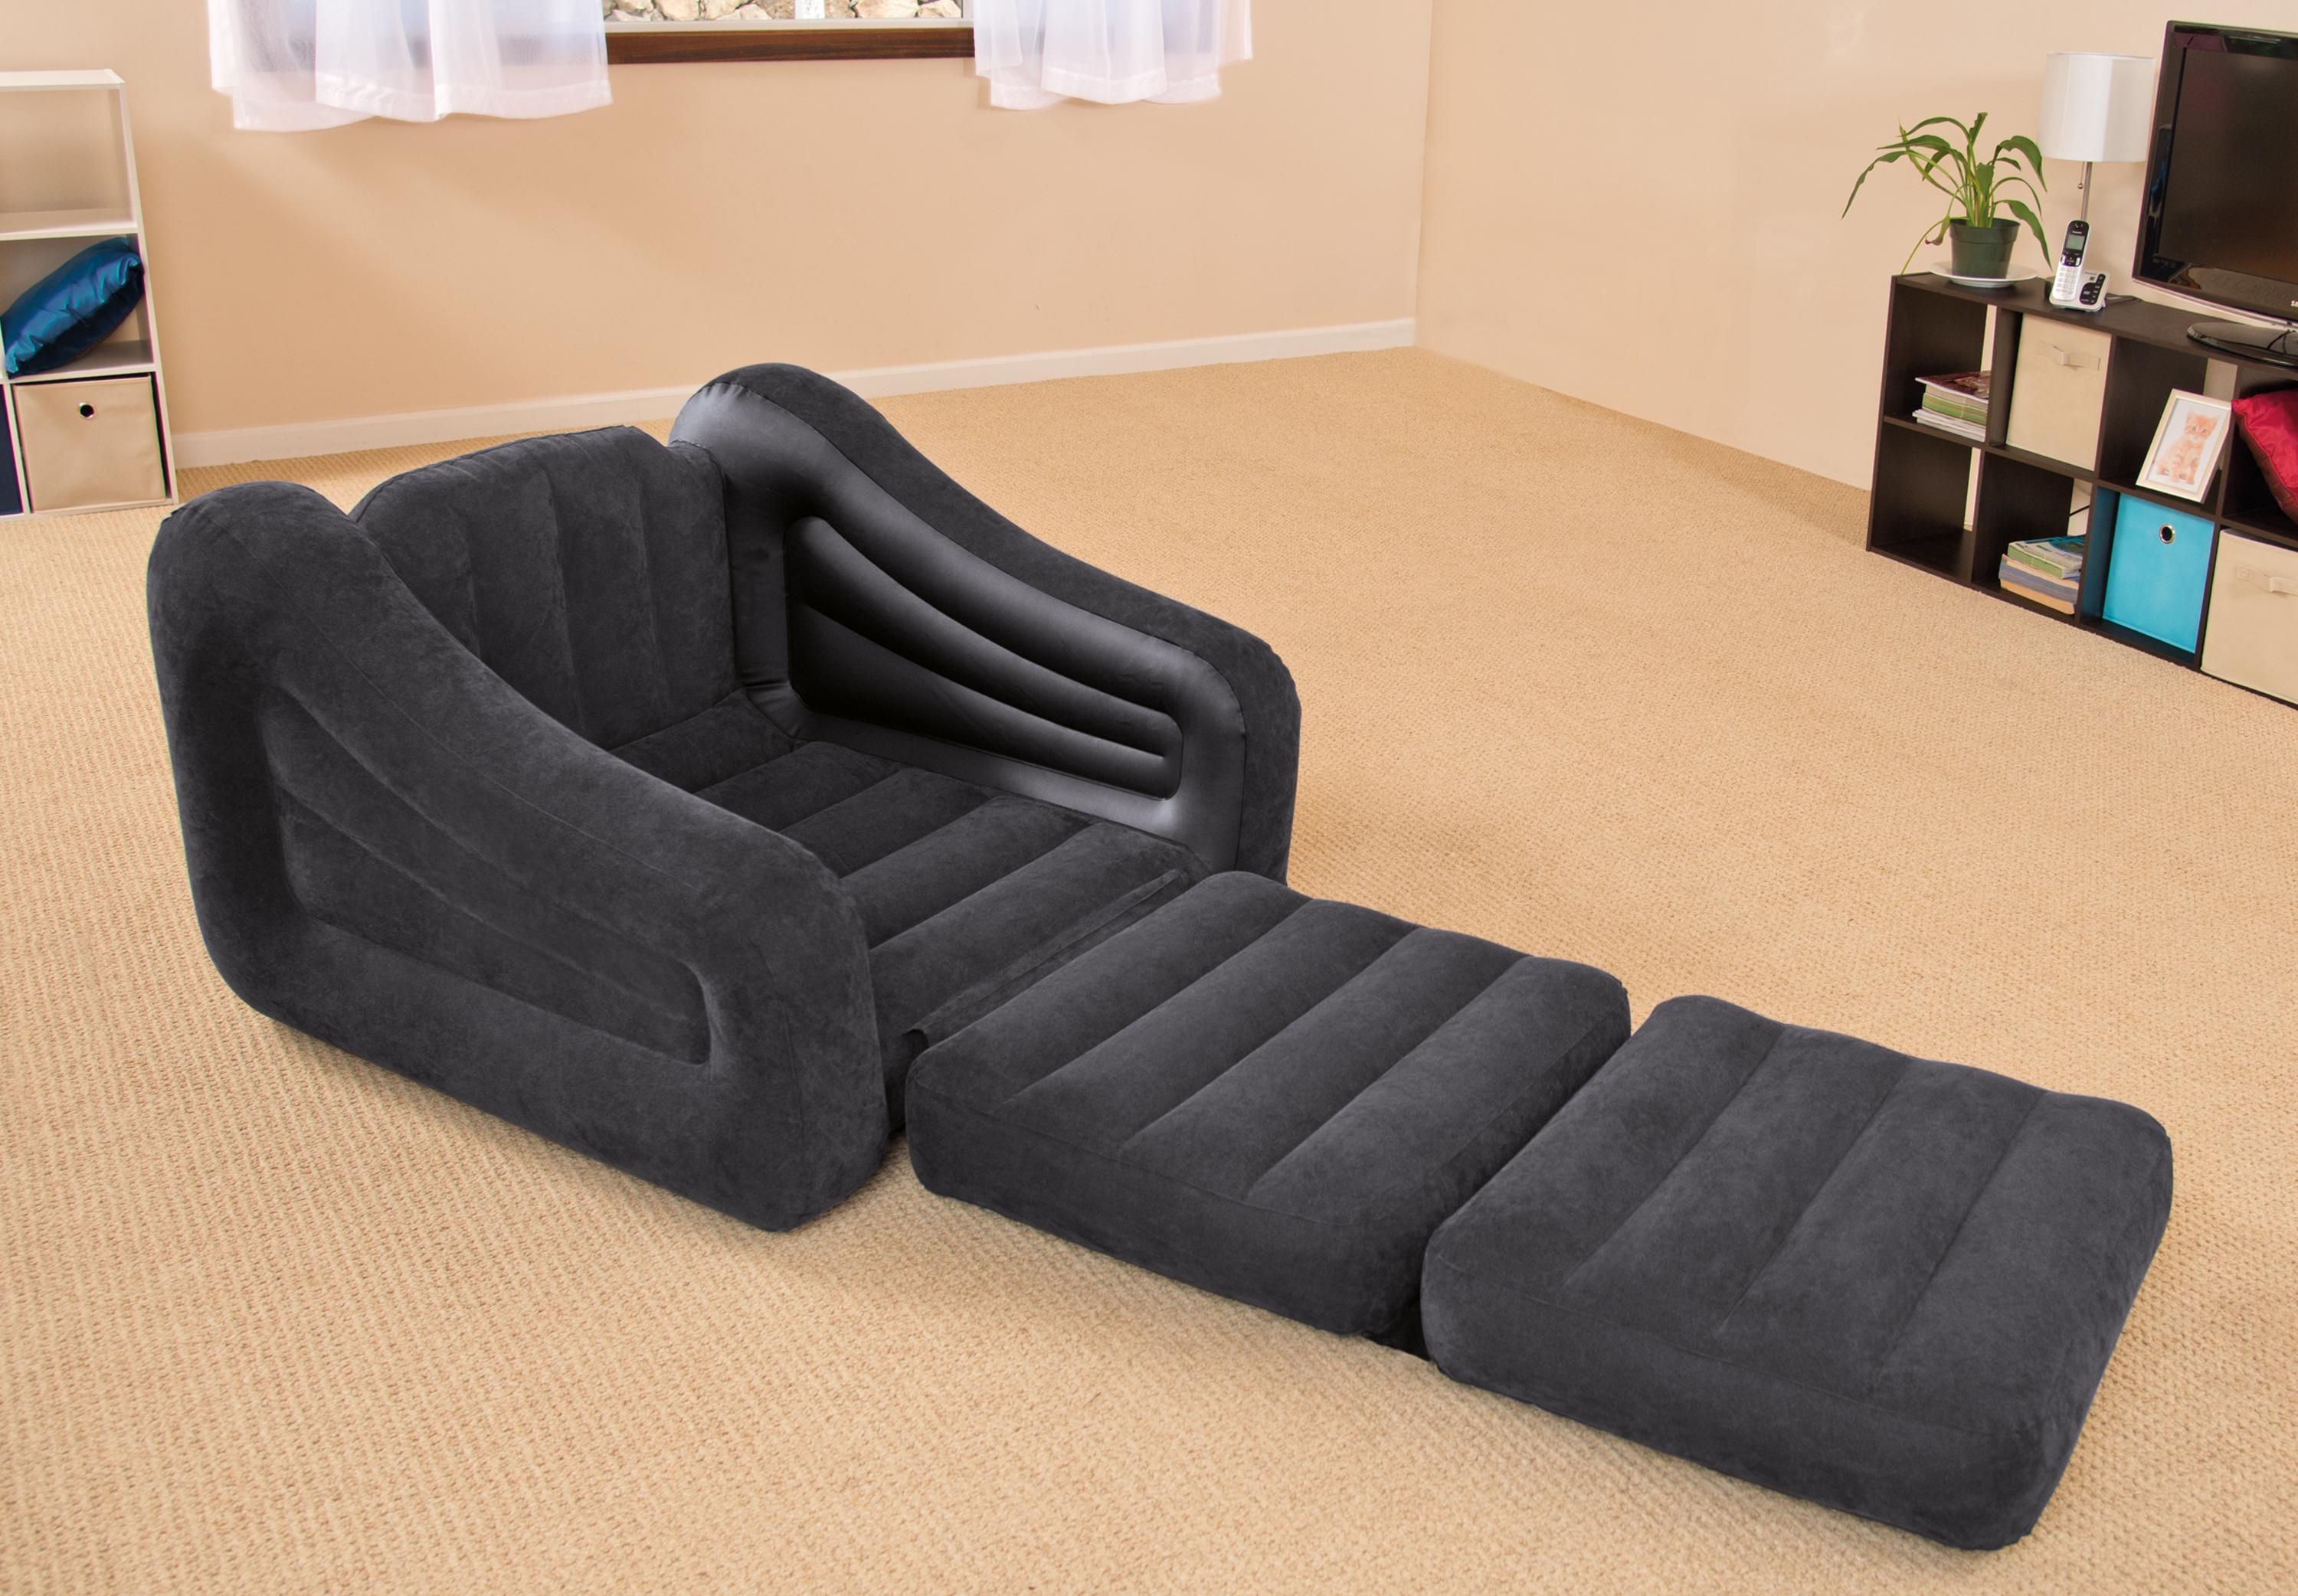 Intex Inflatable Air Chair With Pull Out Twin Bed Mattress Sleeper Inside Inflatable Pull Out Sofas (Image 4 of 20)